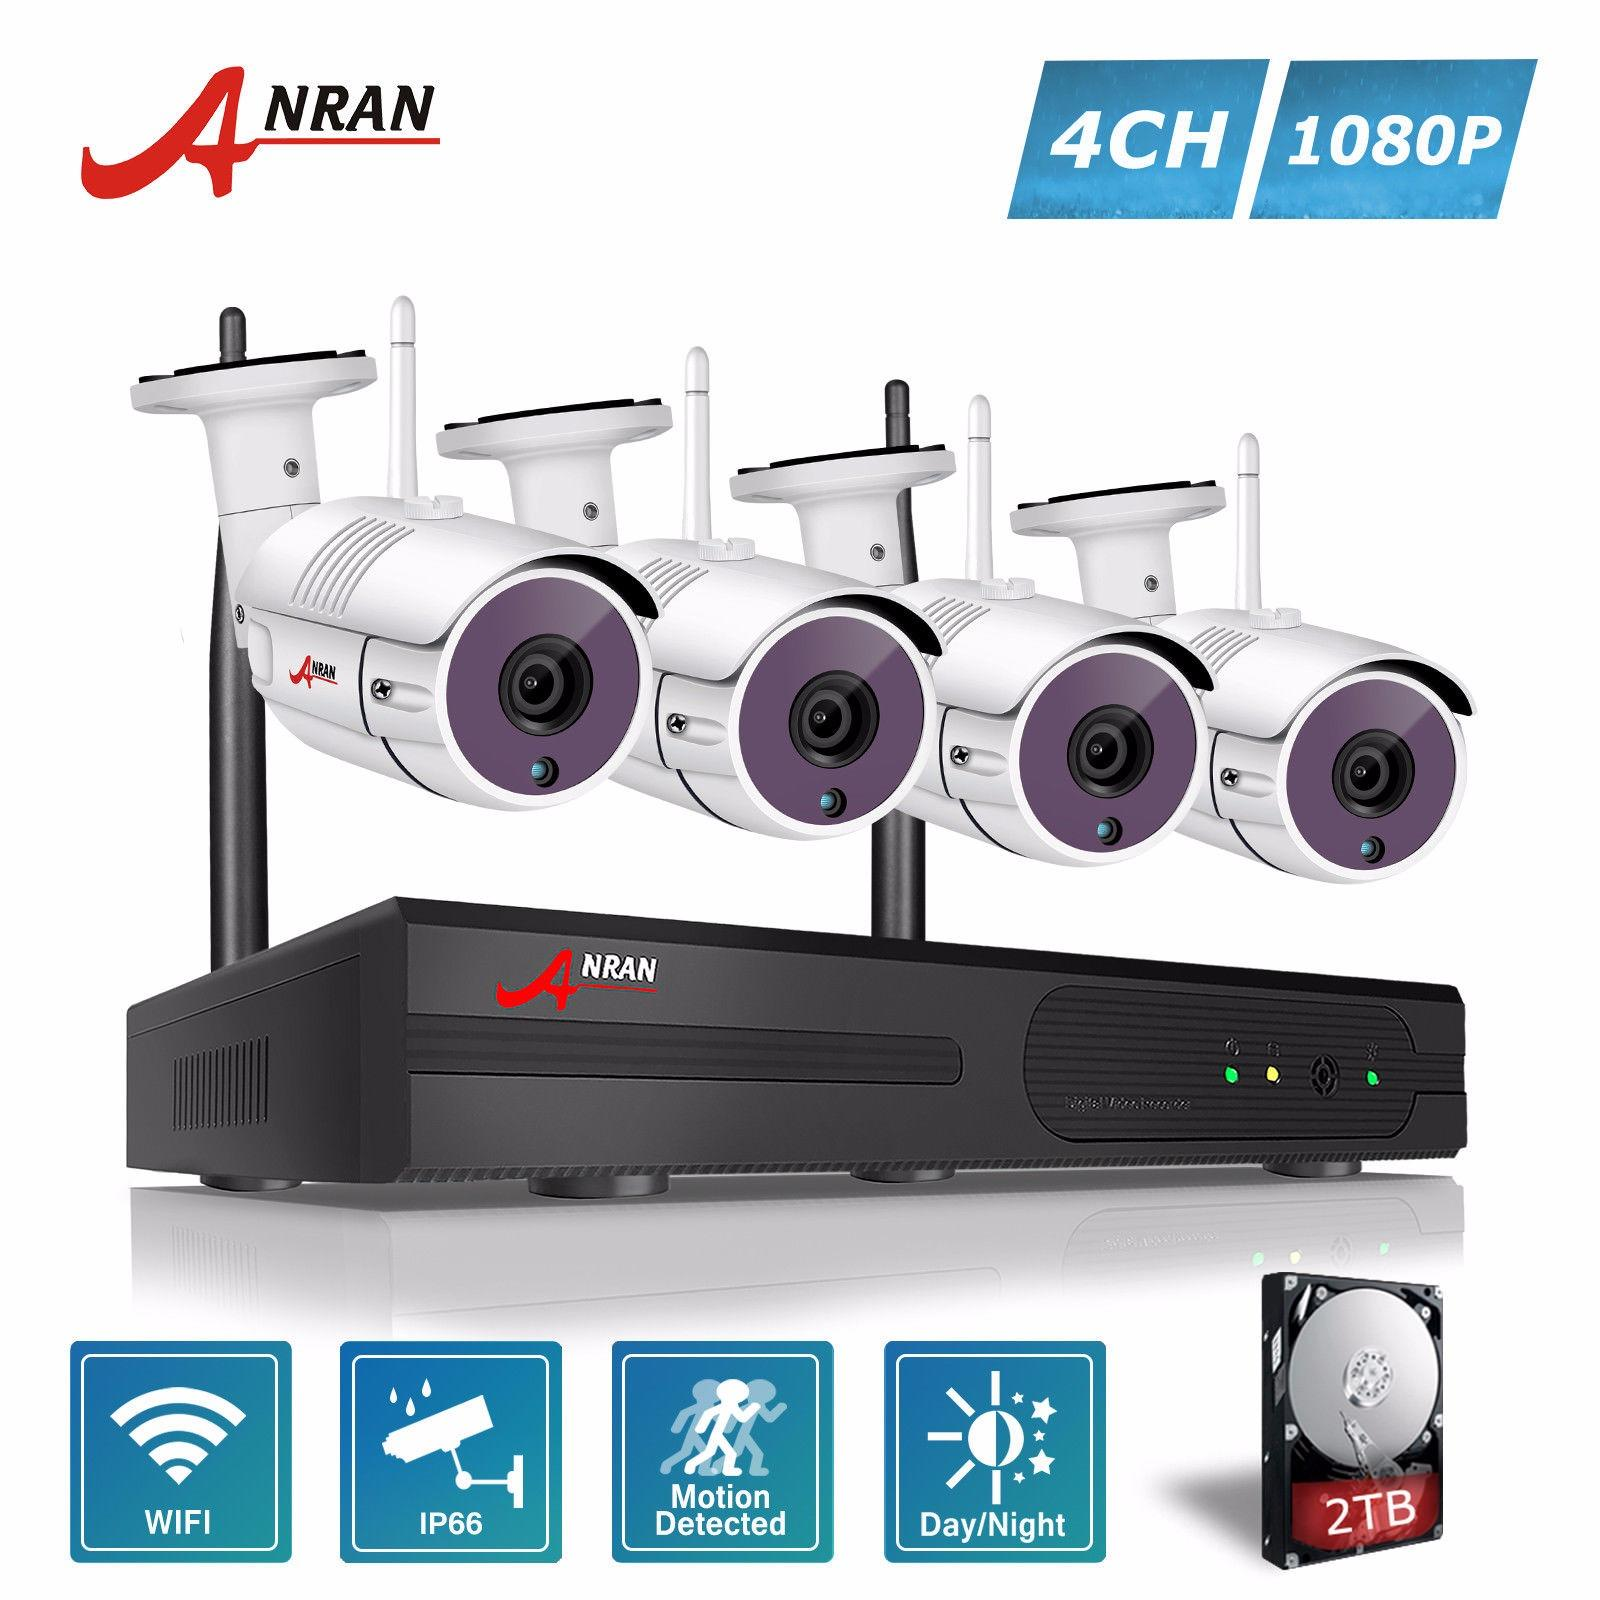 Toko Anran 4Ch Wireless Nvr Cctv Kit P2P 1080P Hd Outdoor Wifi Mini Ip Camera 36Ir Security Surveillance System Lengkap Di Tiongkok